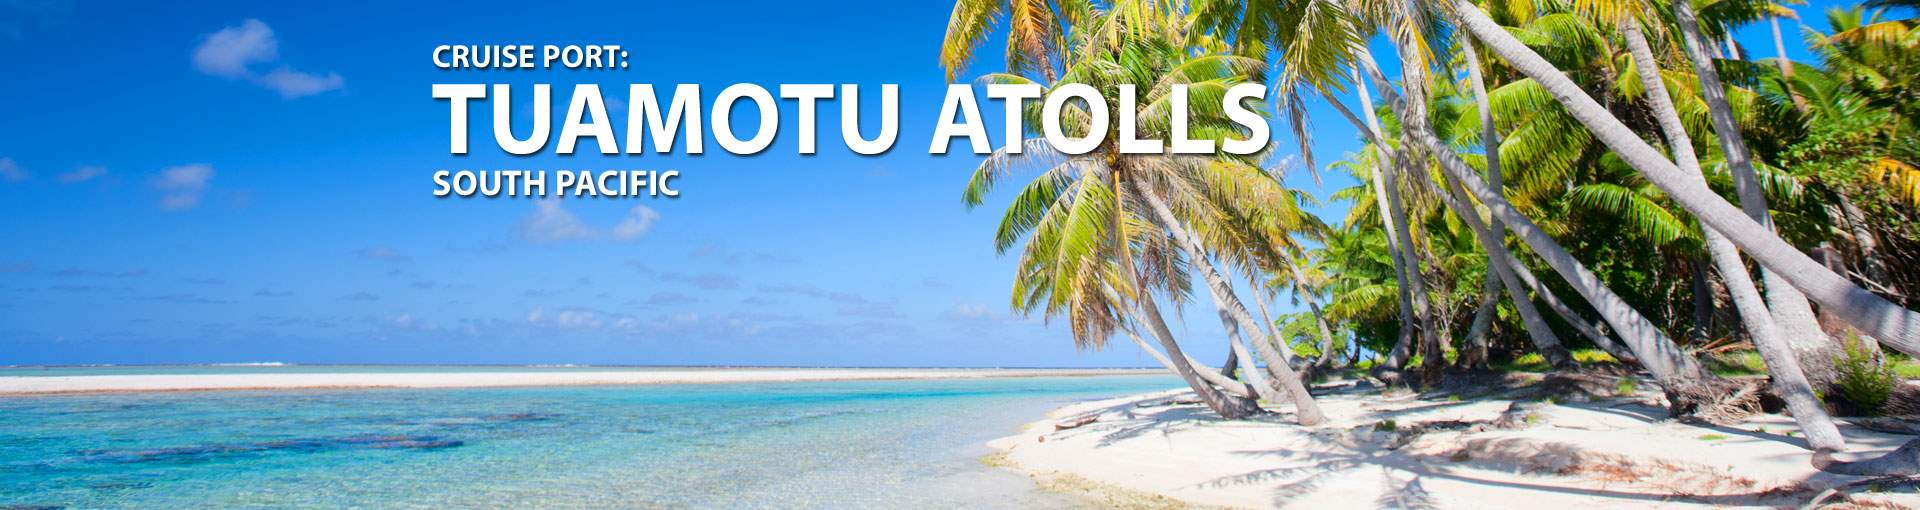 Cruises to Tuamotu Atolls, South Pacific